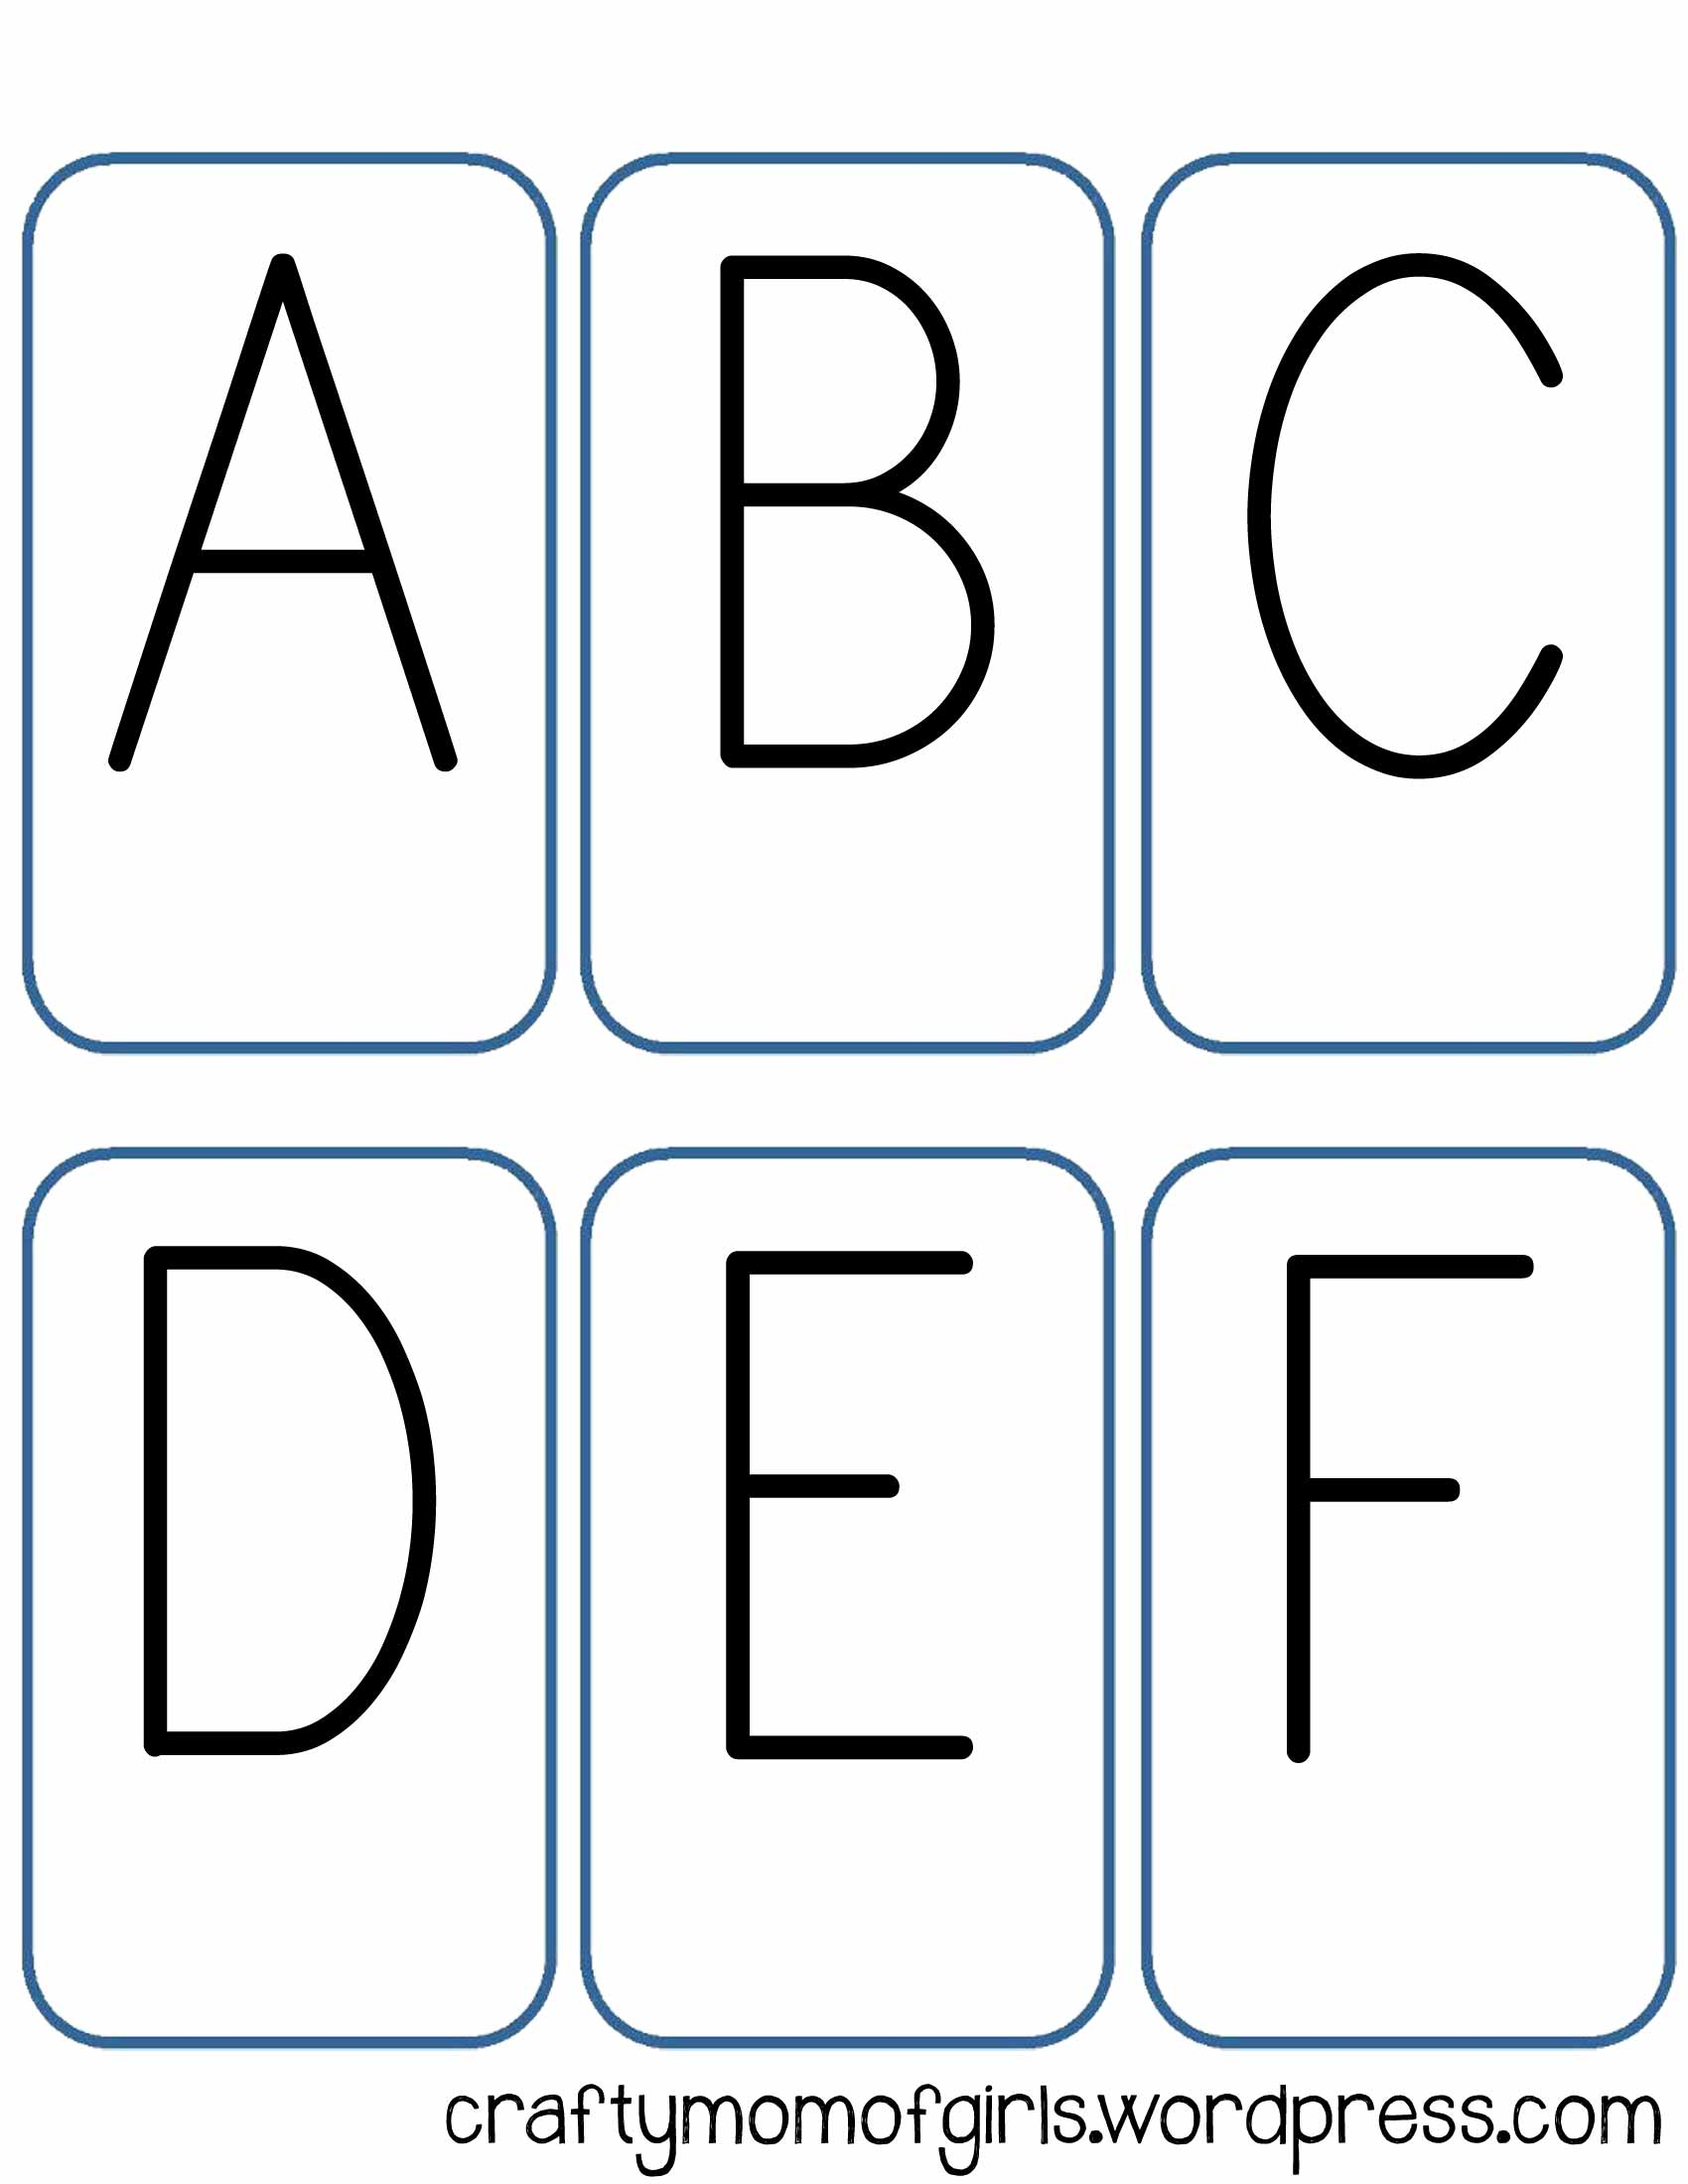 abc-a-f1 Template Card X In Letter Size on